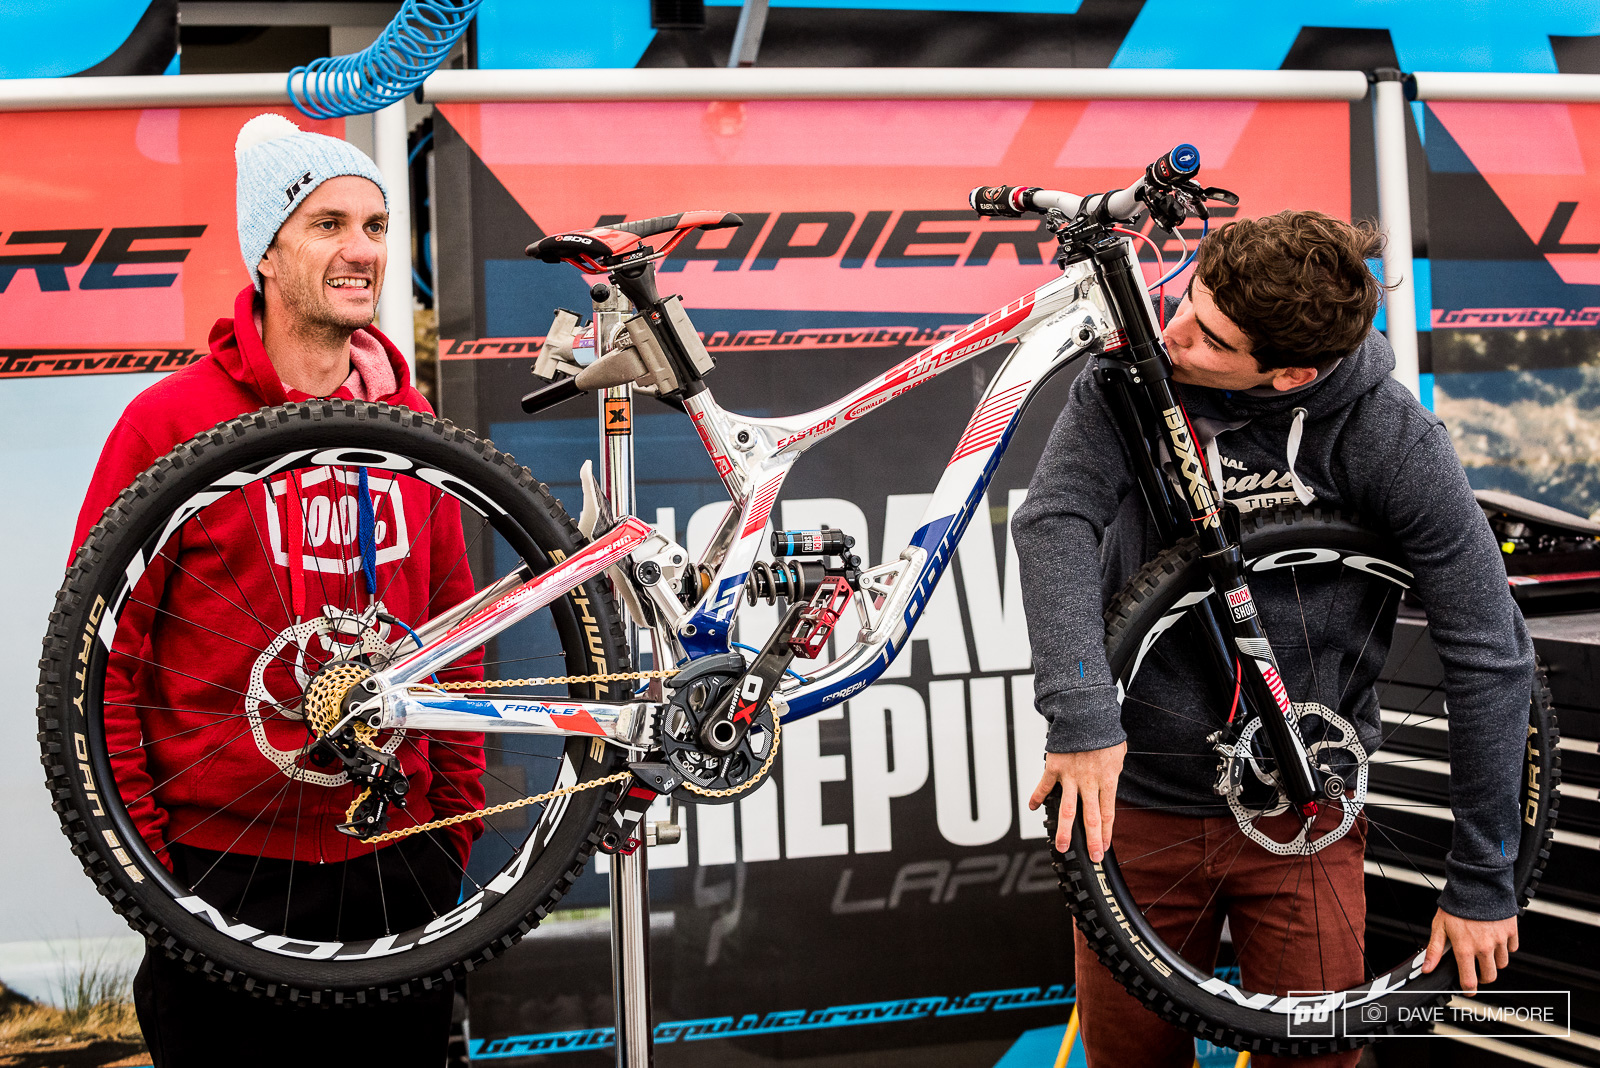 Loic in love with his new custom bike at World Champs. His mechanic Jack prepped the bike in secret and surprised Loic on the morning of the first training session.